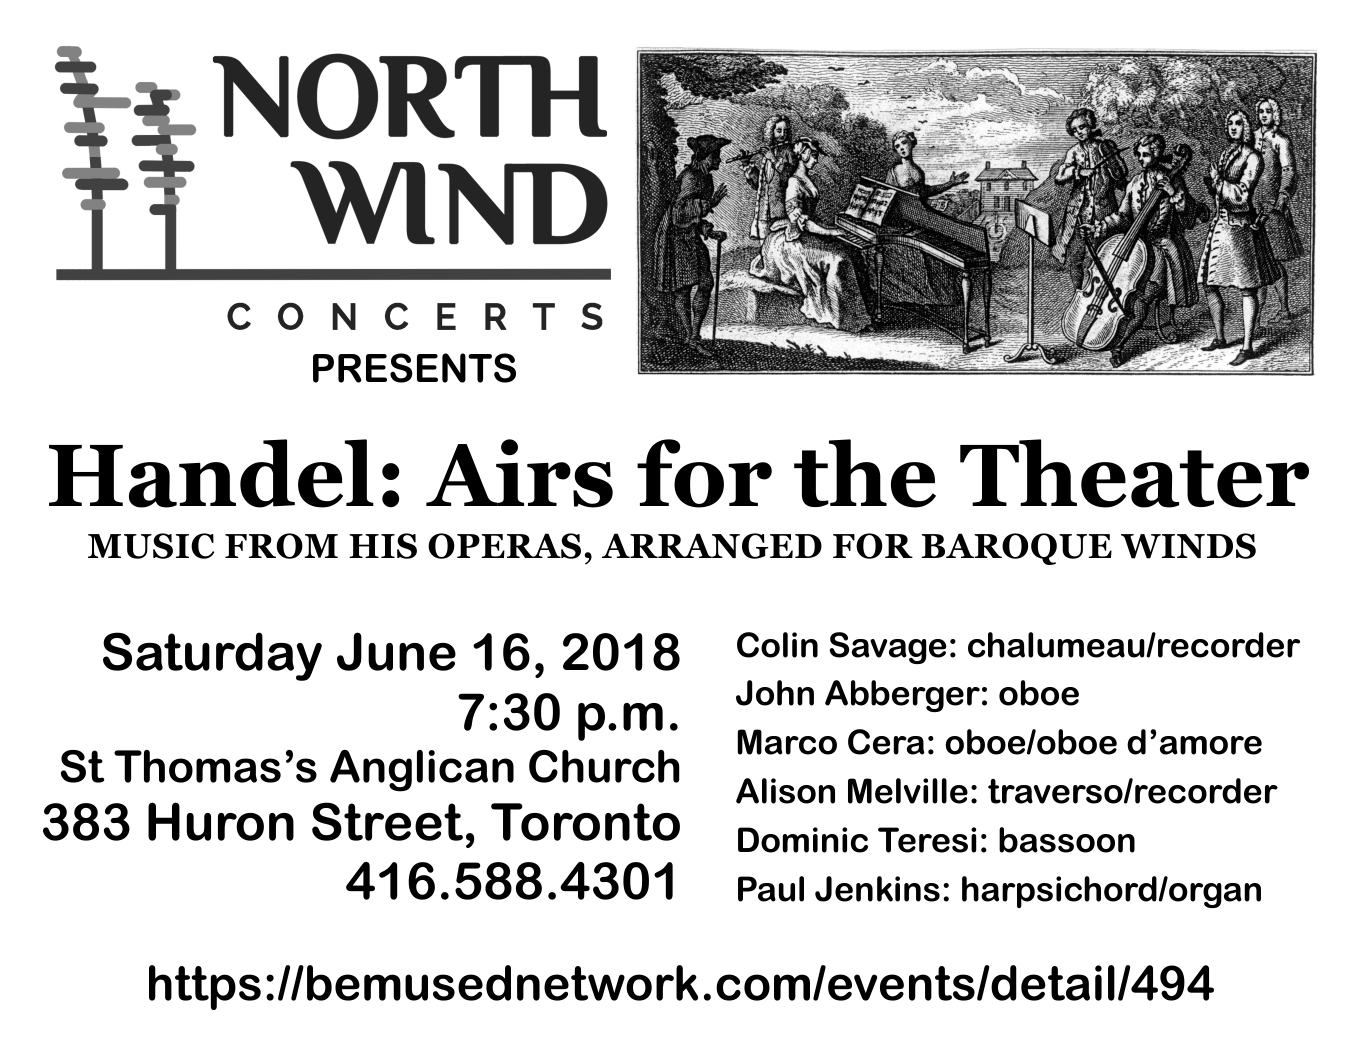 North Wind Ad for Wychwood Concert May 27 2018 2018m05d04c 383 huron st.jpg